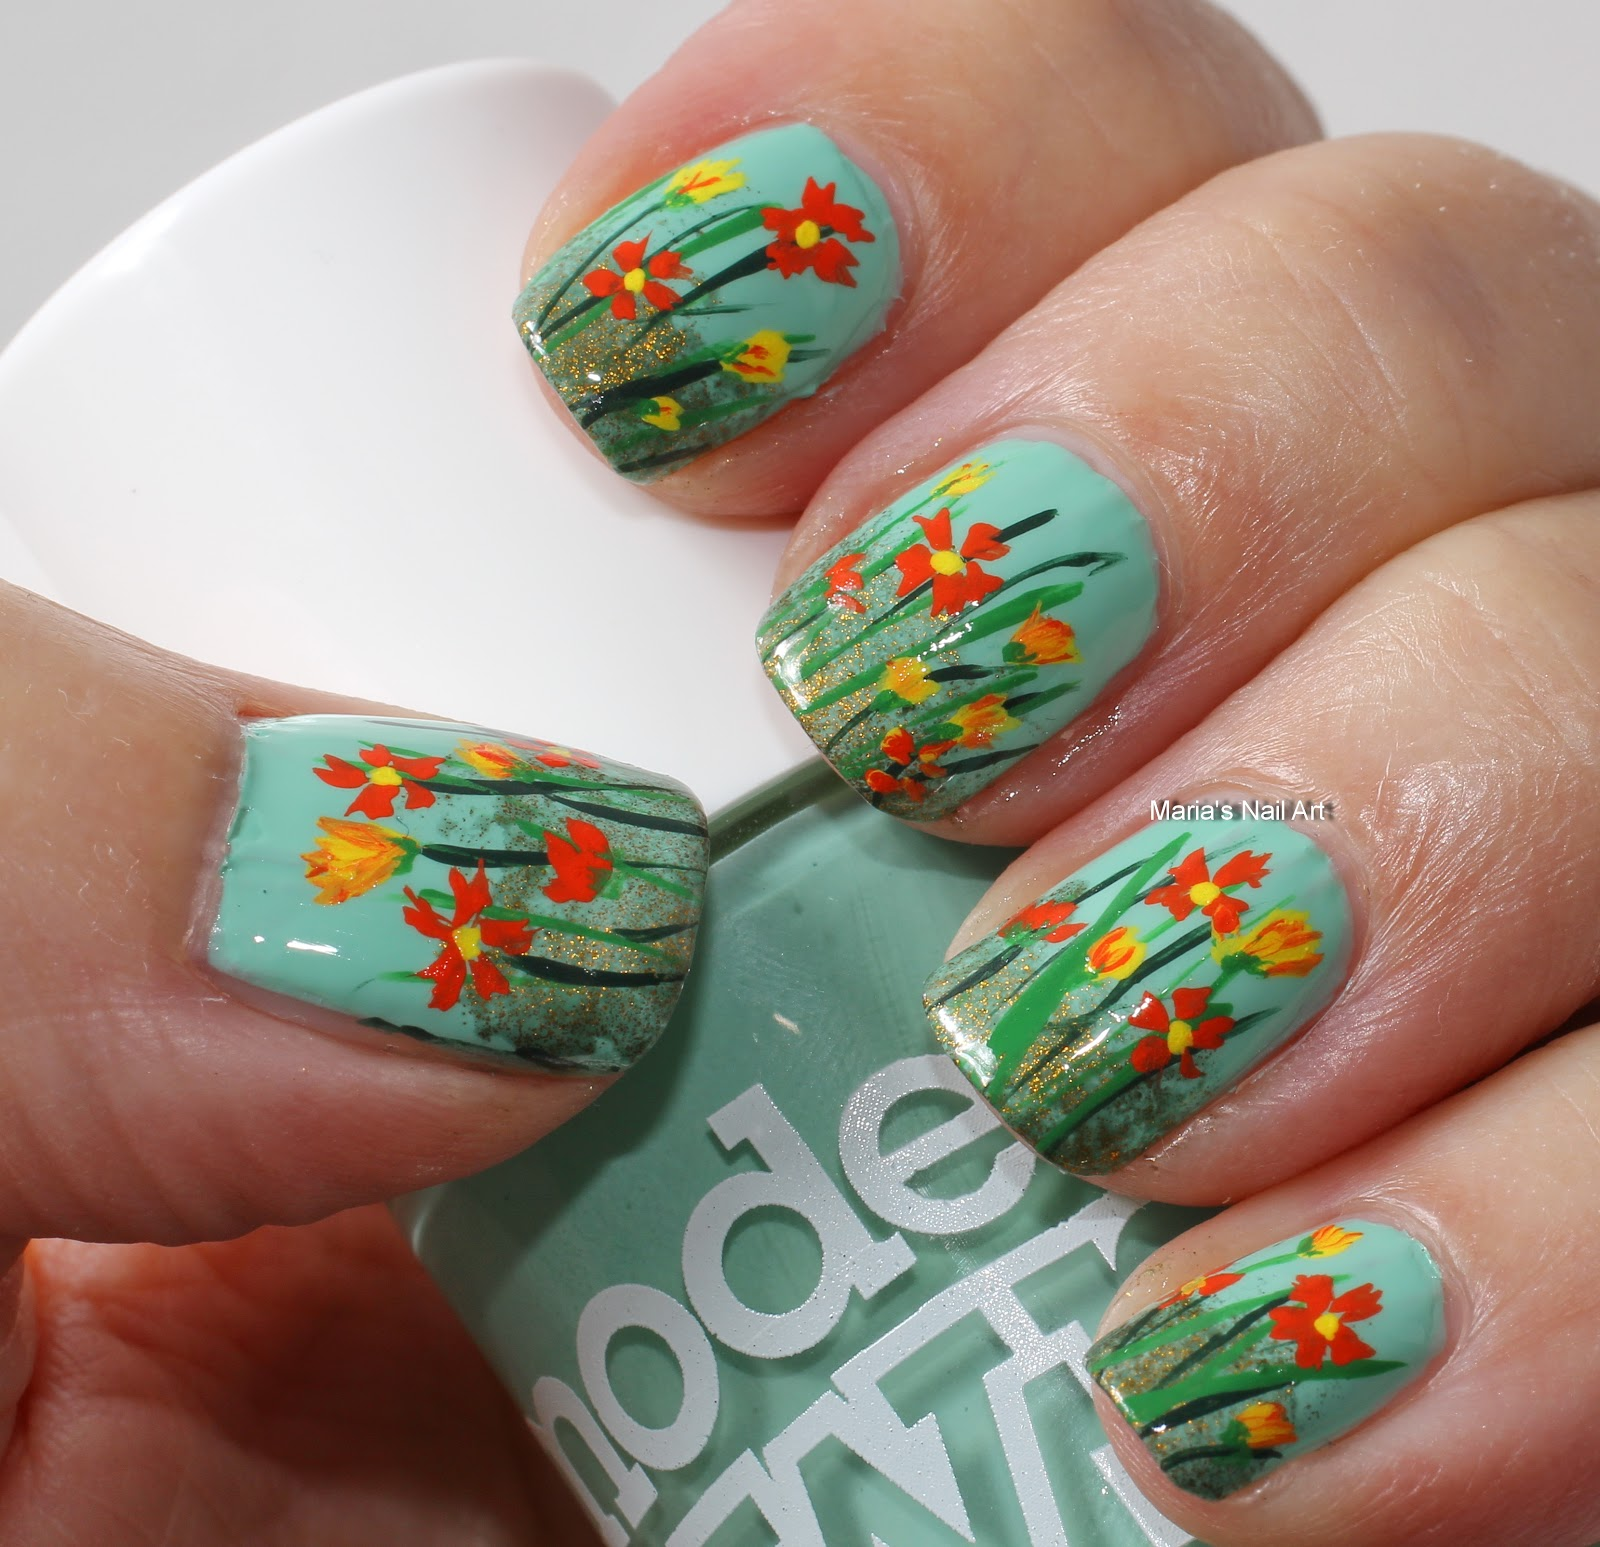 Flower Nail Art: Marias Nail Art And Polish Blog: The Wild Flowers On The